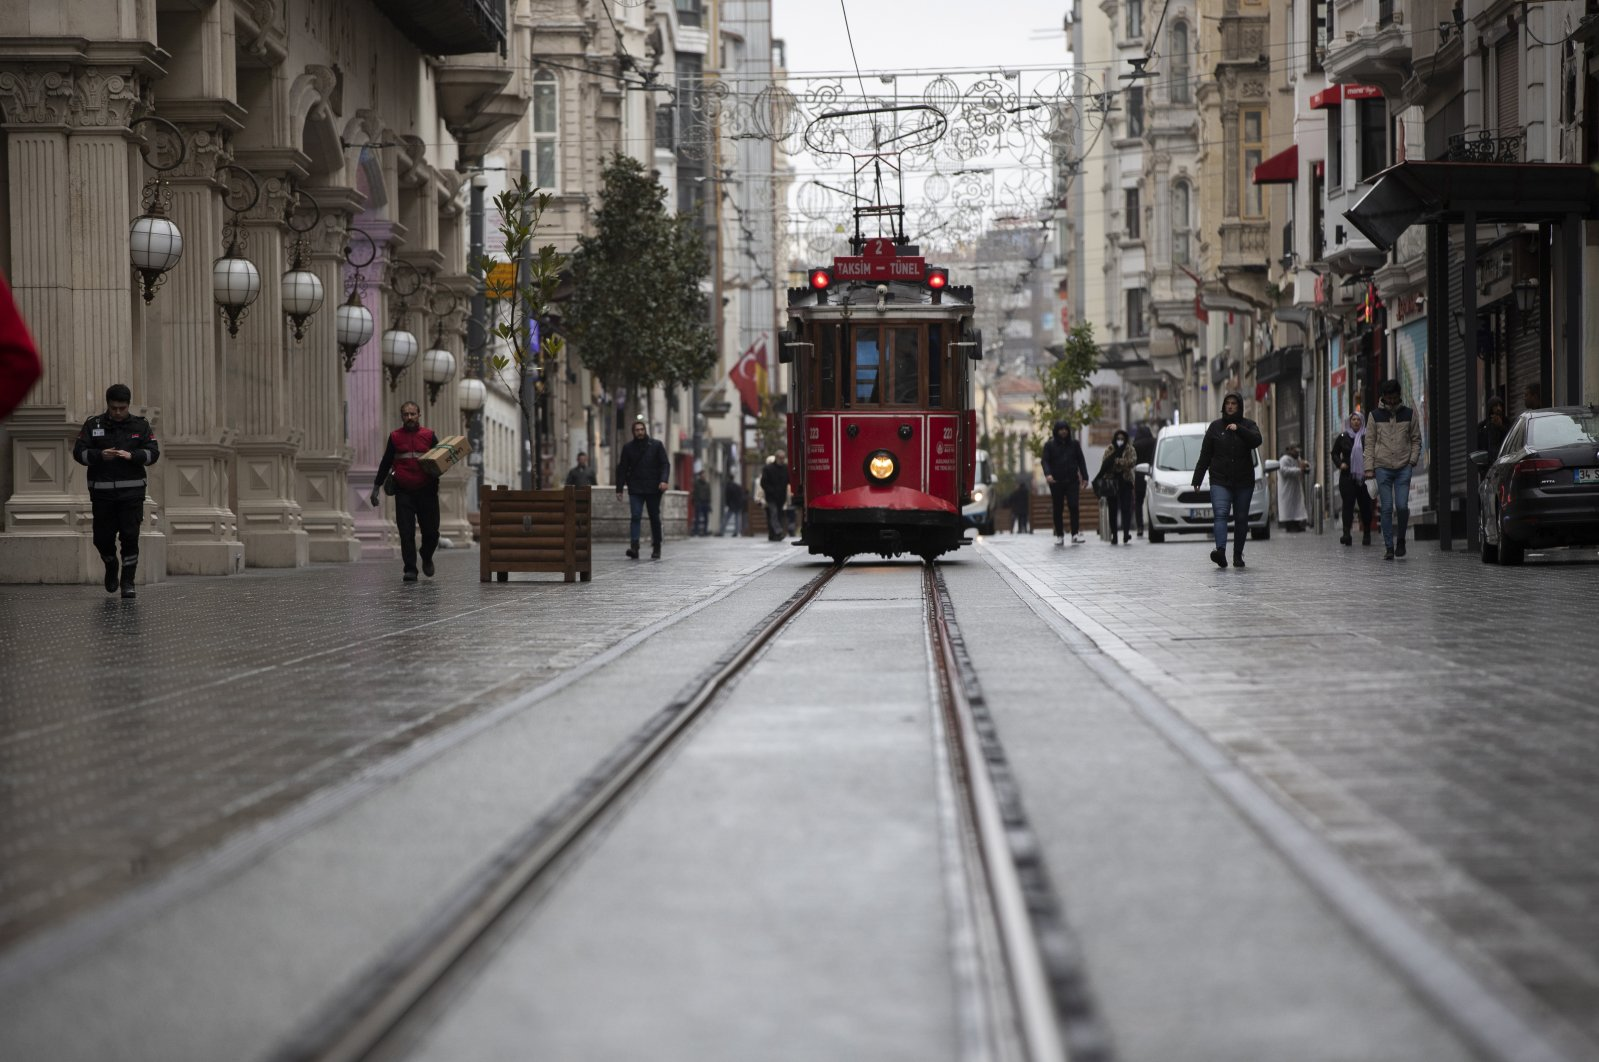 A few people can be seen walking on the usually bustling Istiklal Street which looks eerily empty over coronavirus concerns in Istanbul, Turkey, Tuesday, 24 March 2020. (EPA-EFE Photo)